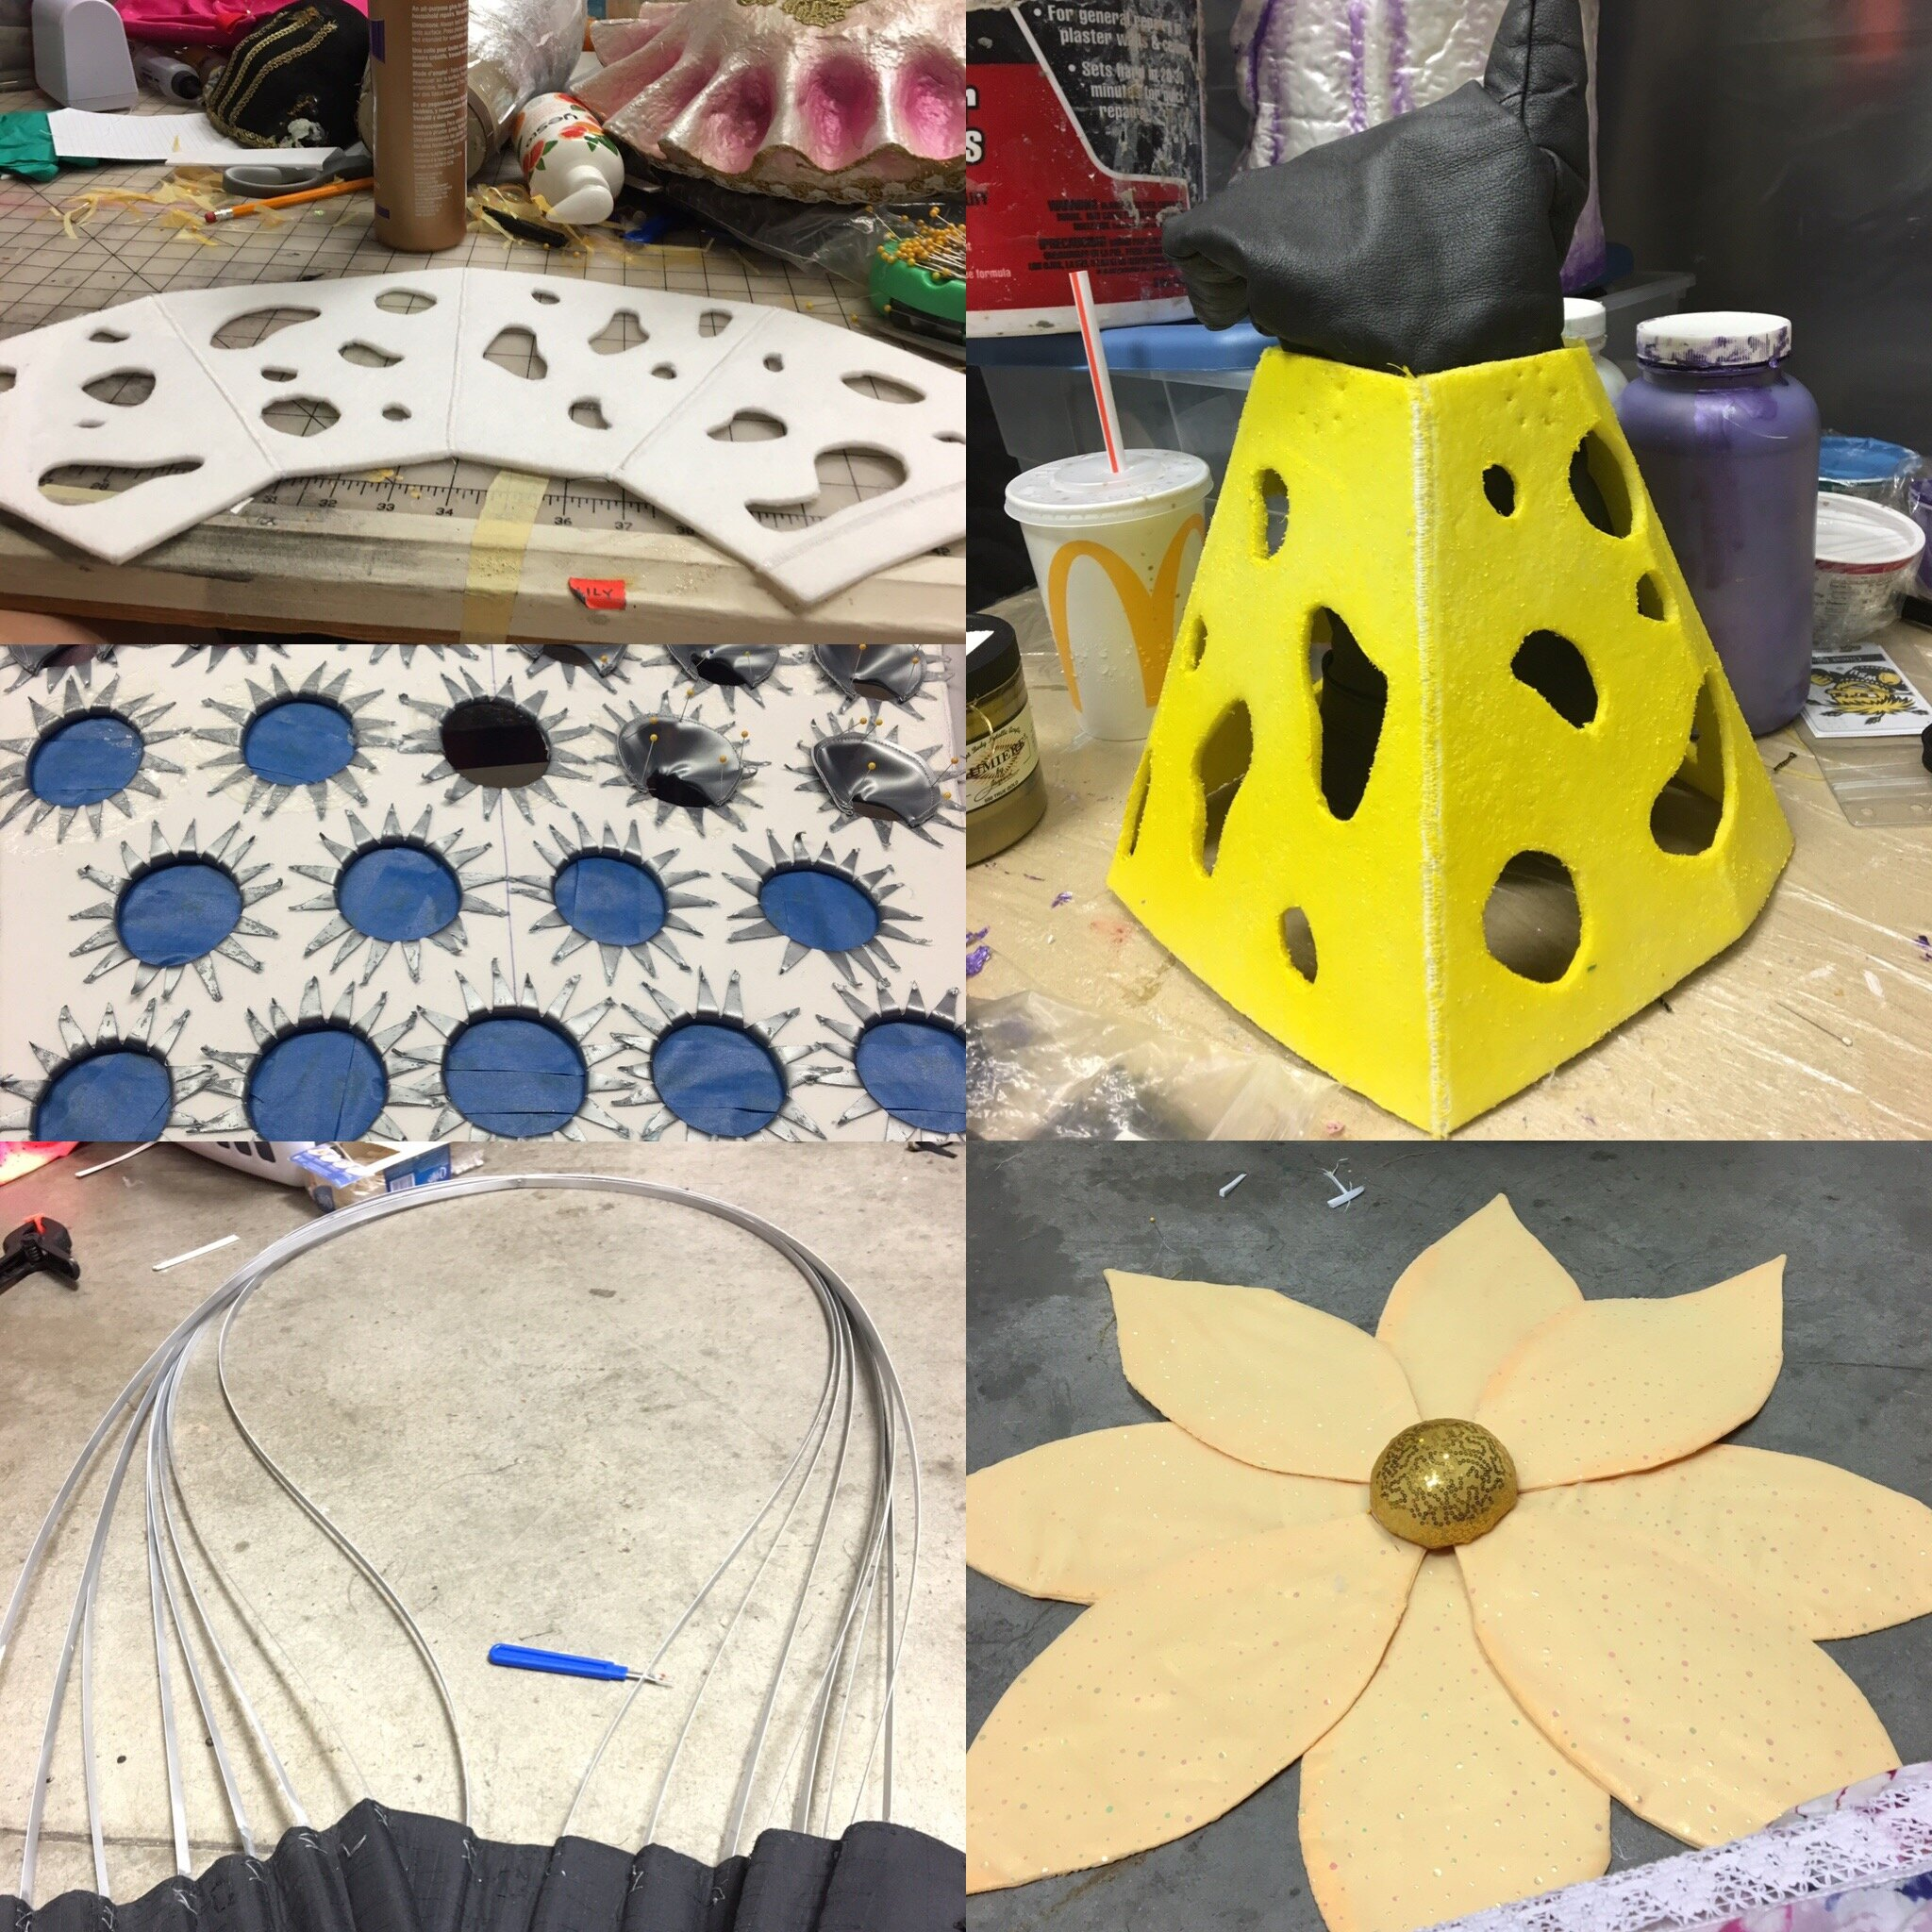 Cheese Grater, Whisk, and Flowers for Vase- Beauty and the Beast-  Music Theatre Wichita 2016  Costume Design by Tiia Torchia Lager.